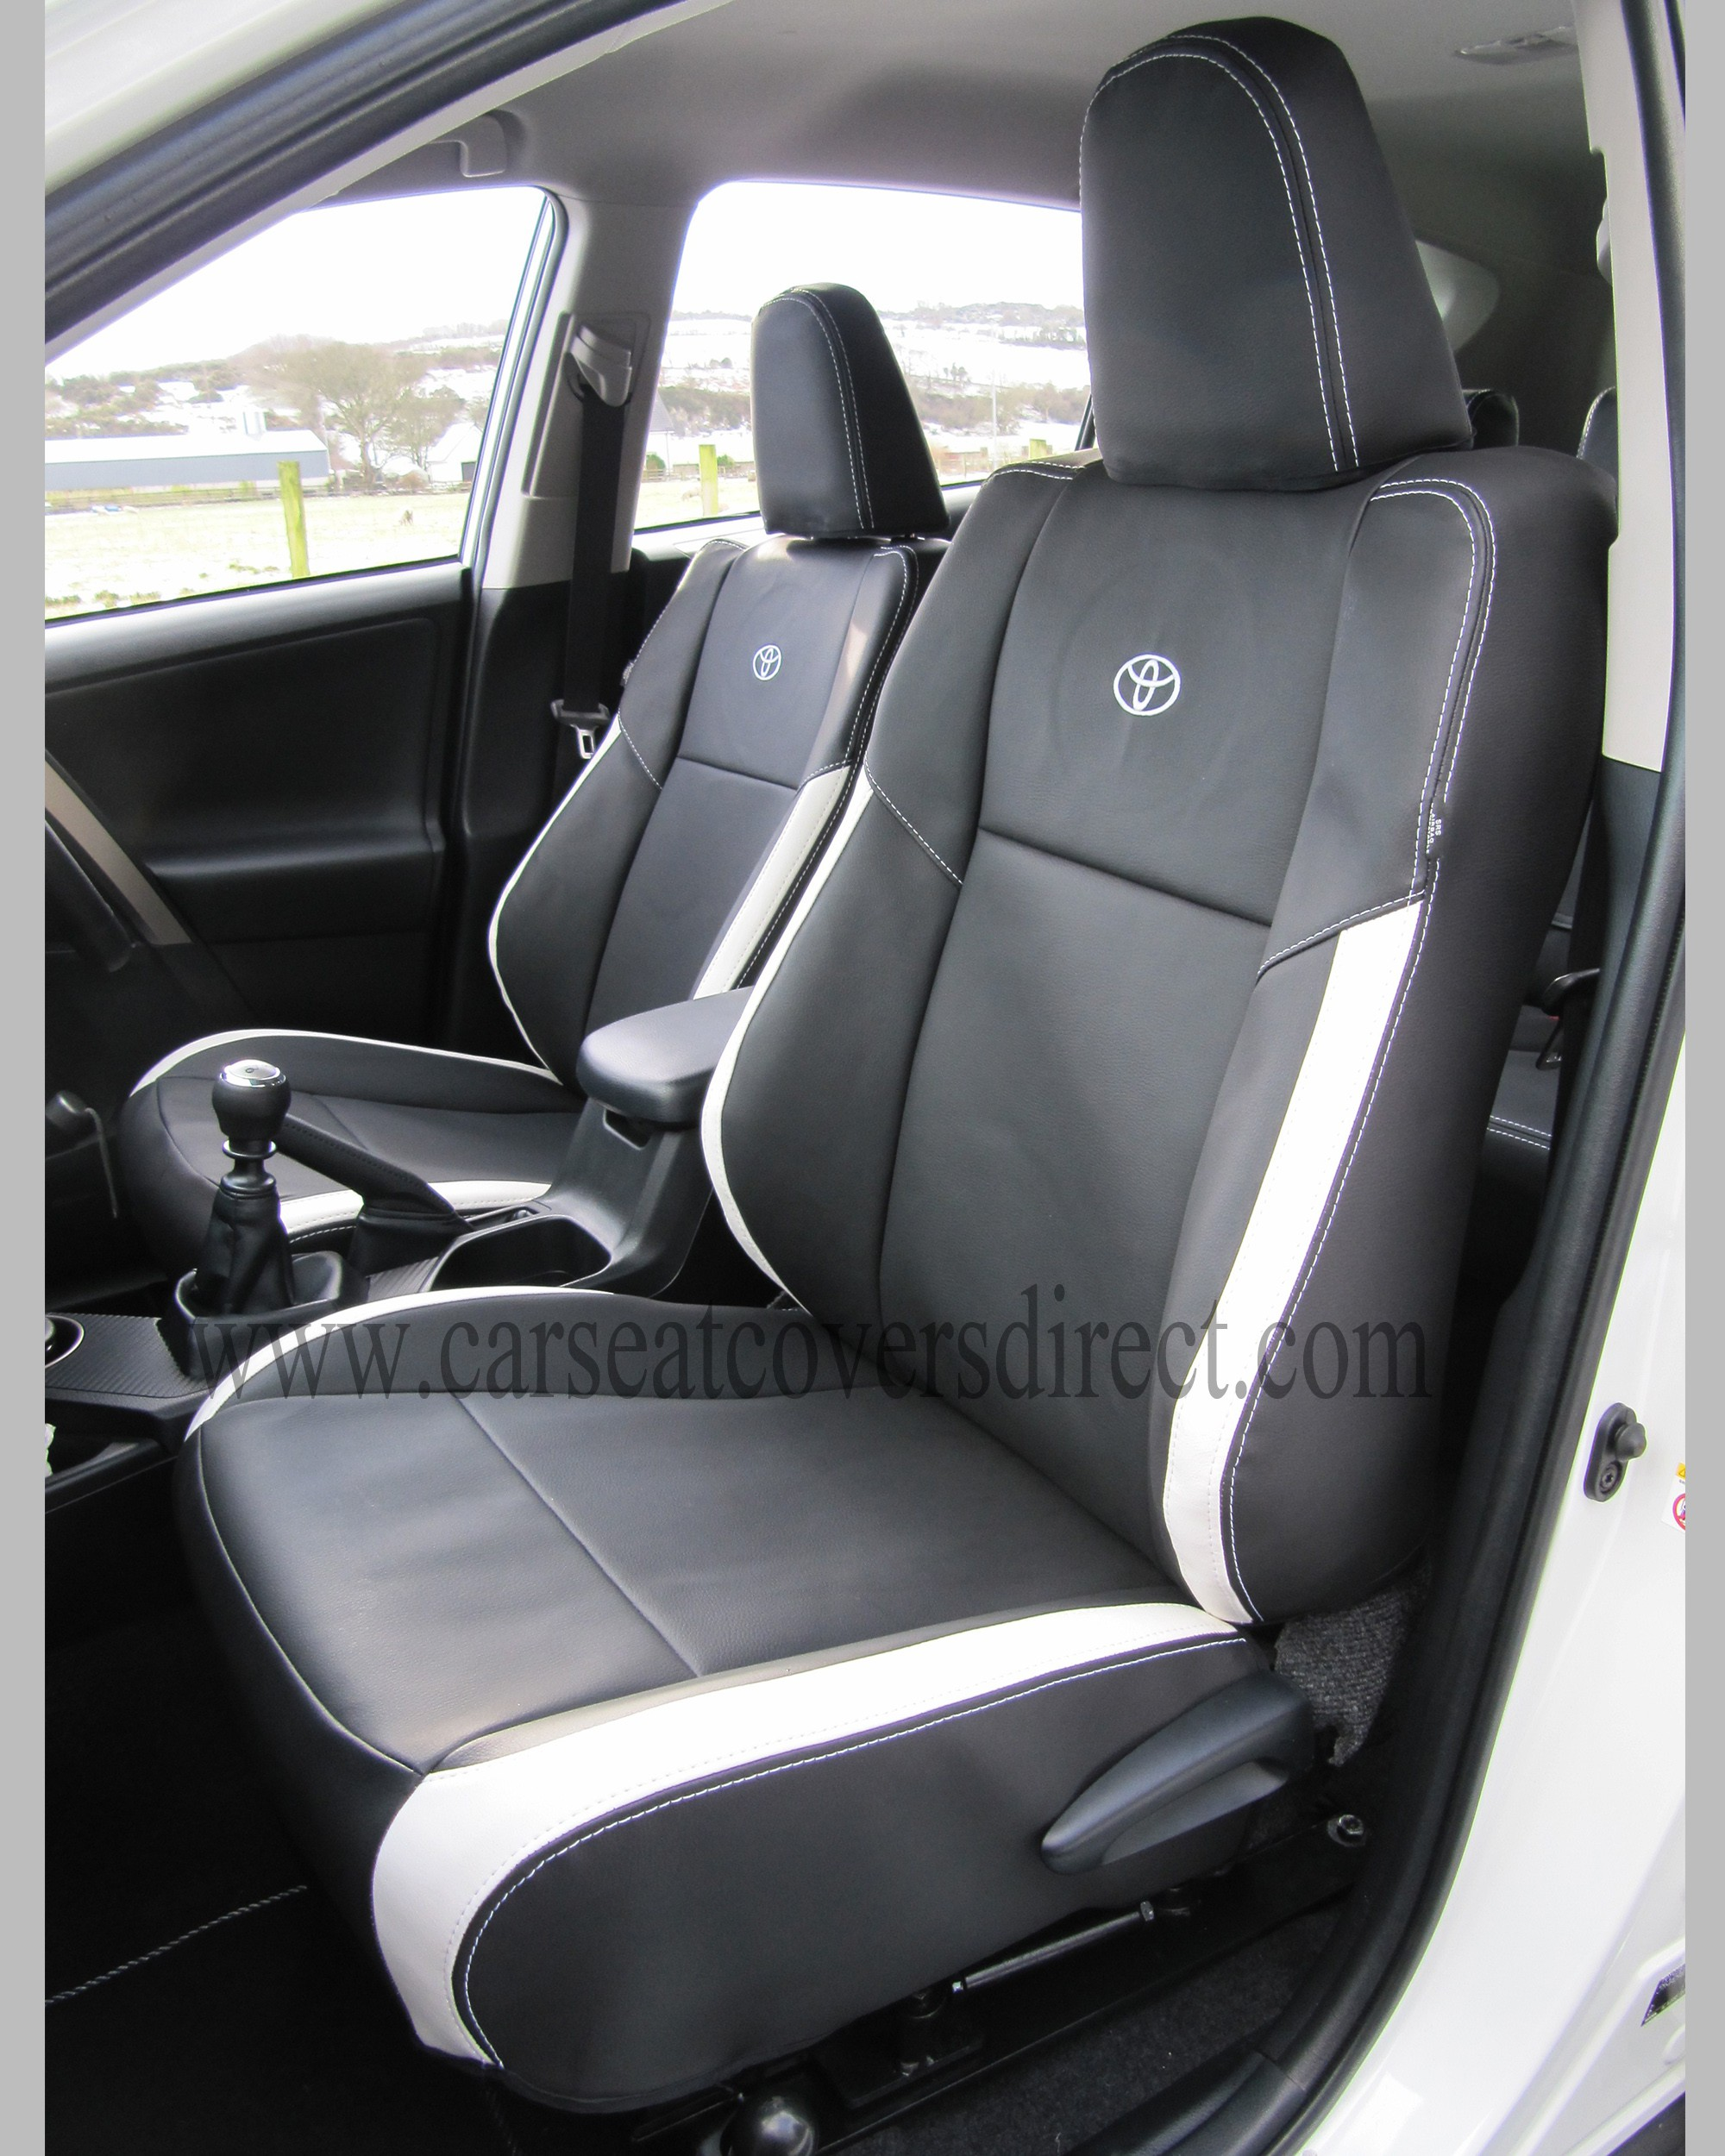 Toyota Rav4 Seat Covers Black Amp White Leatherette 4th